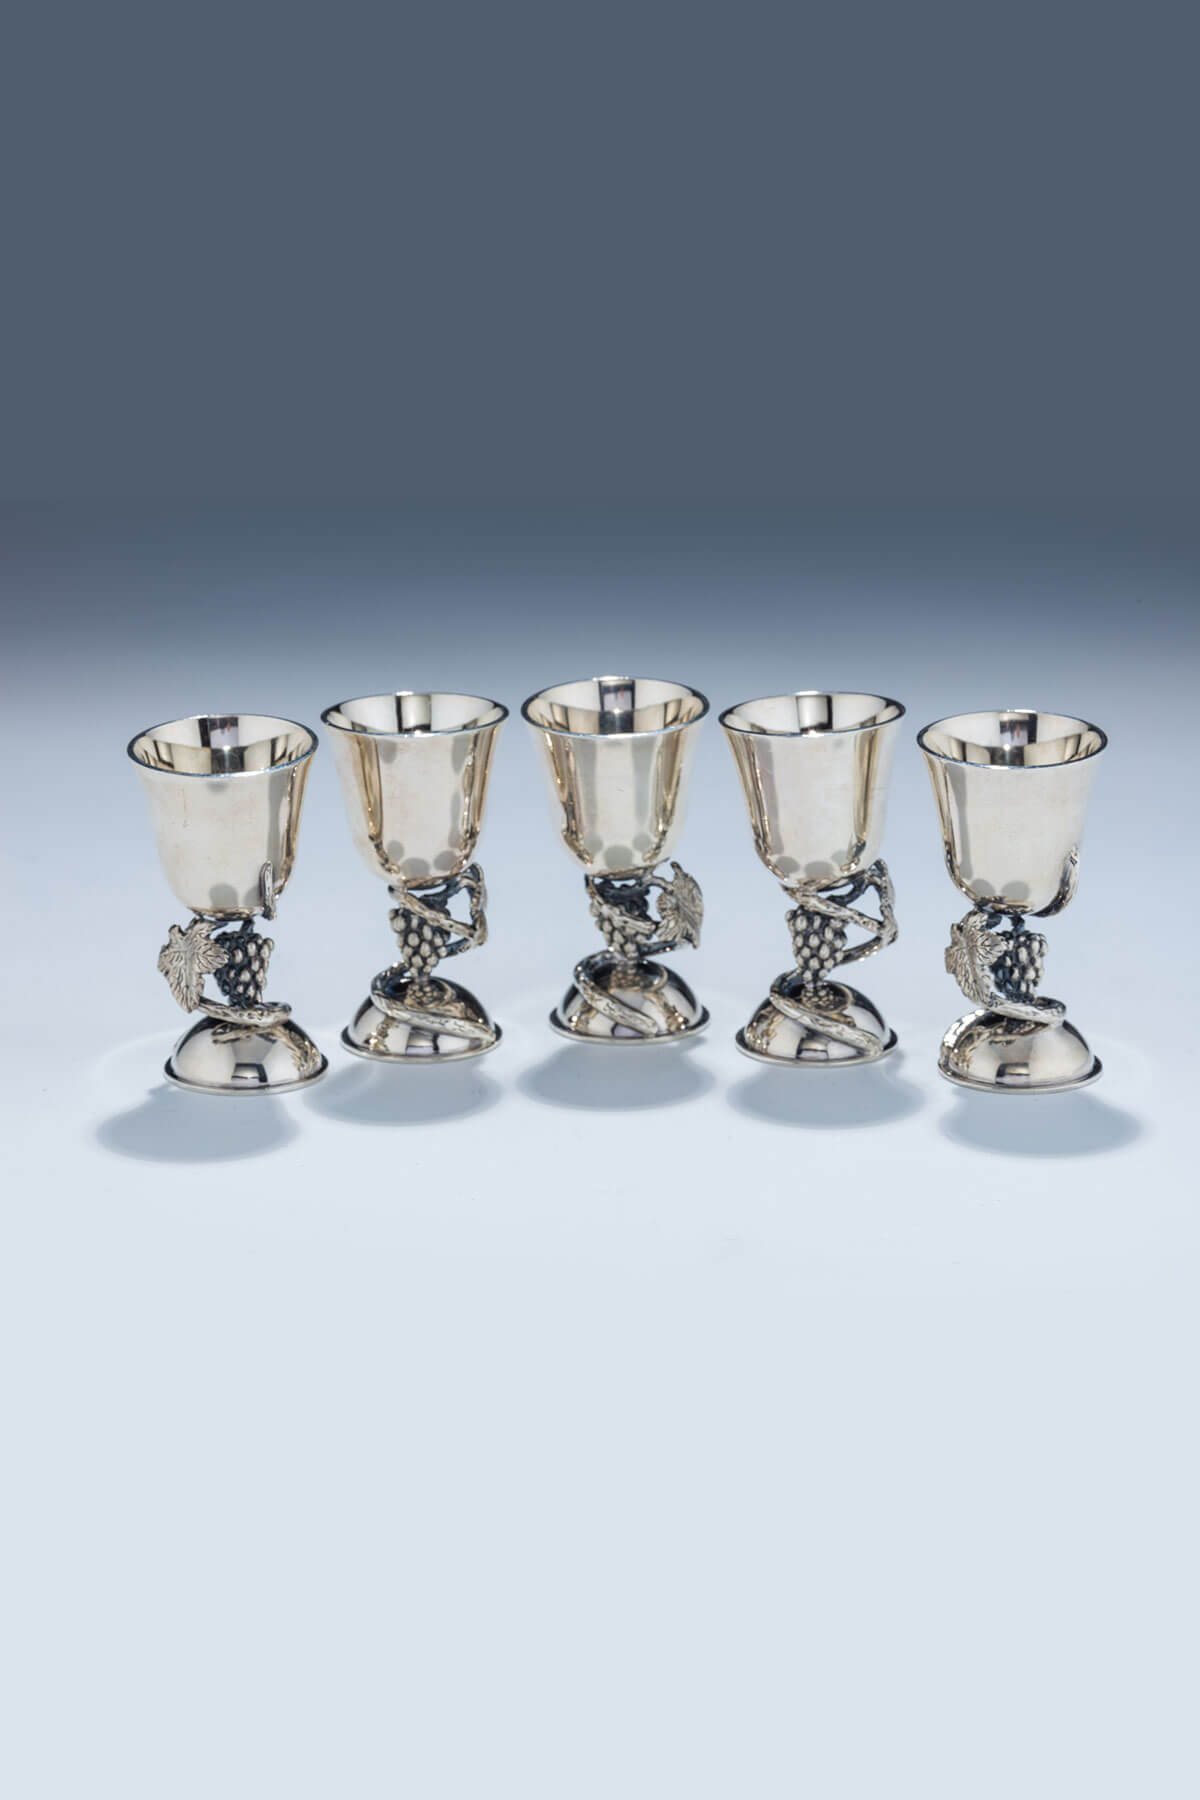 156. Five Sterling Silver Goblets by Swed Master Silversmiths